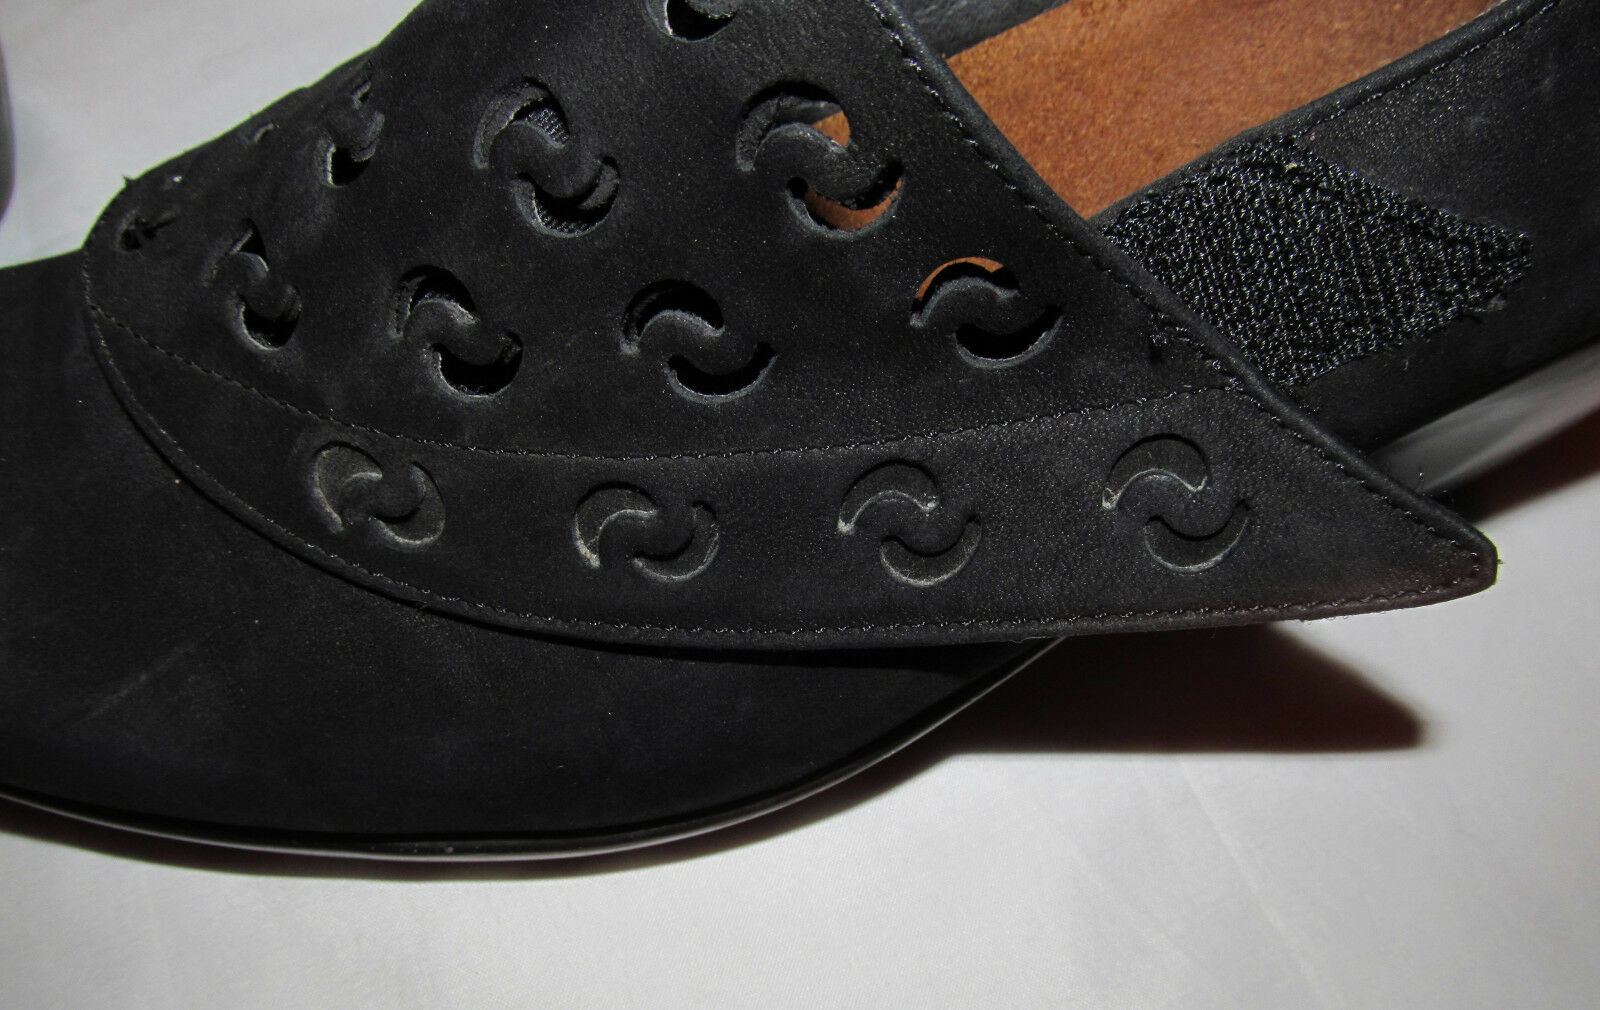 NAOT PRECIOUS nubick black suede feel perfoeated strap ankle shoes shoes shoes booties 39 f59746